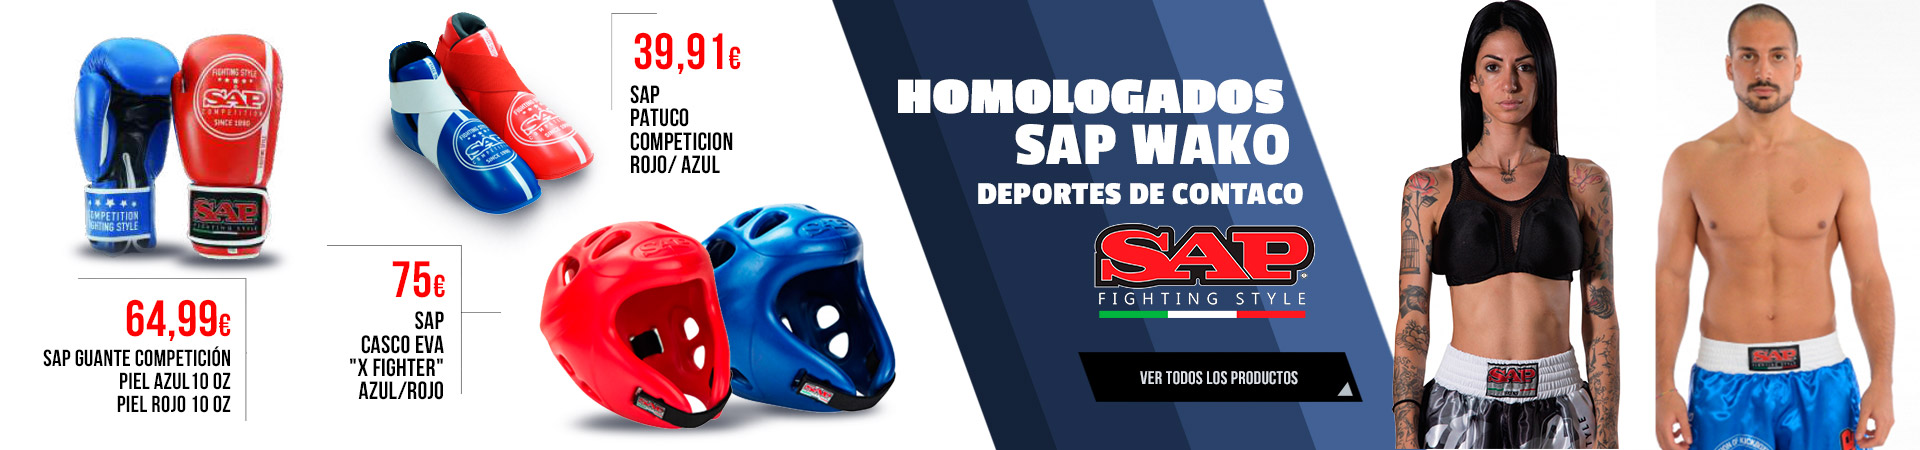 Slider-home-guantess20-HOMOLAGOS-WAKO-